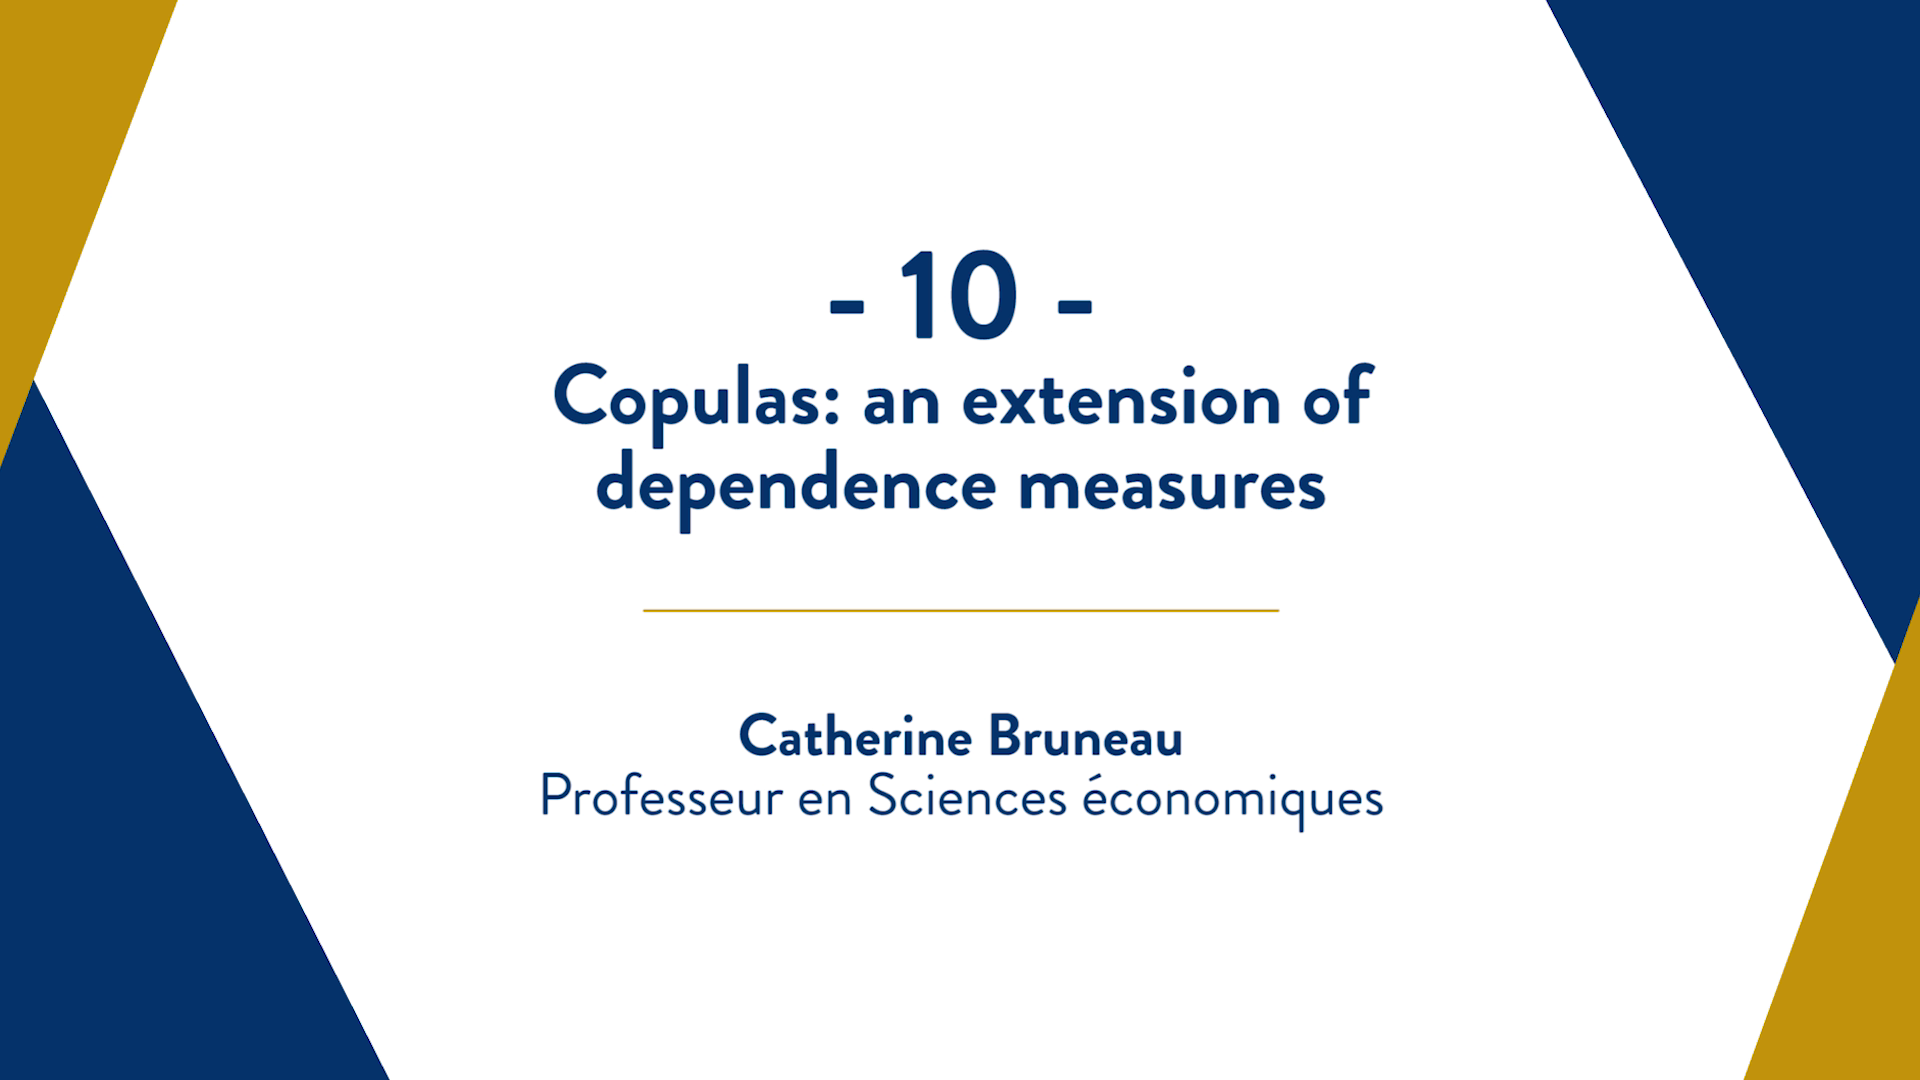 Capsule 10: Copulas: an extension of dependence measures